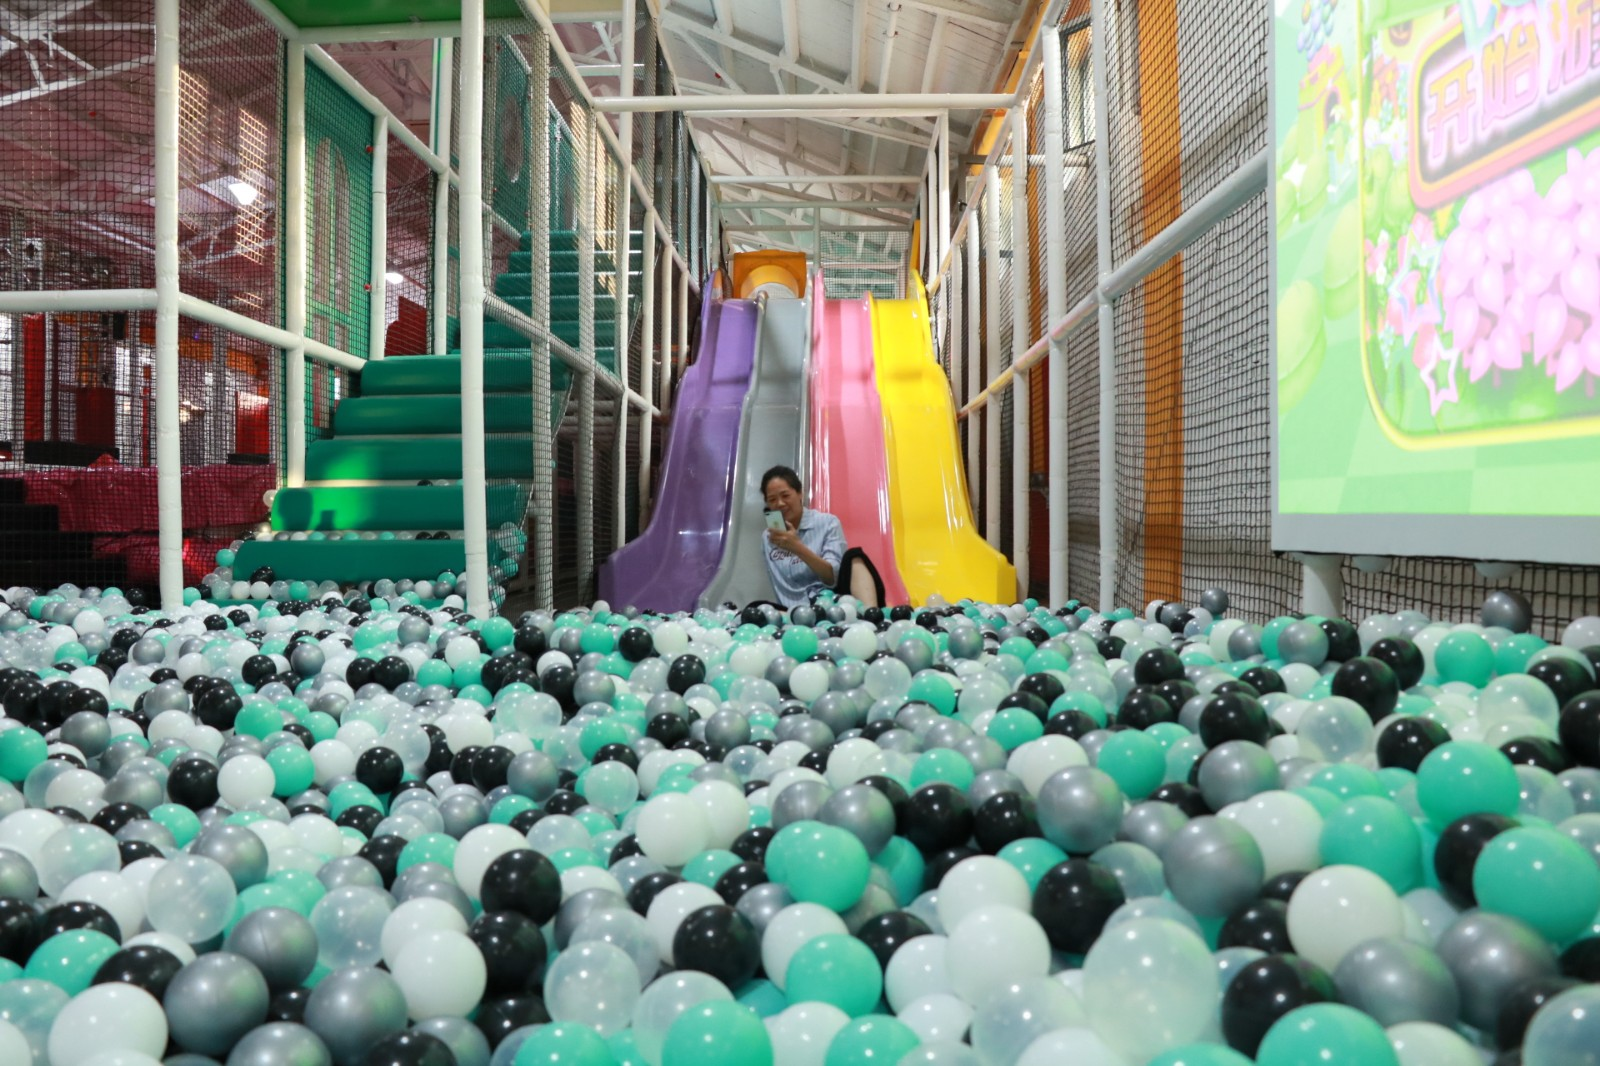 dream garden children's indoor playground equipment manufacturer